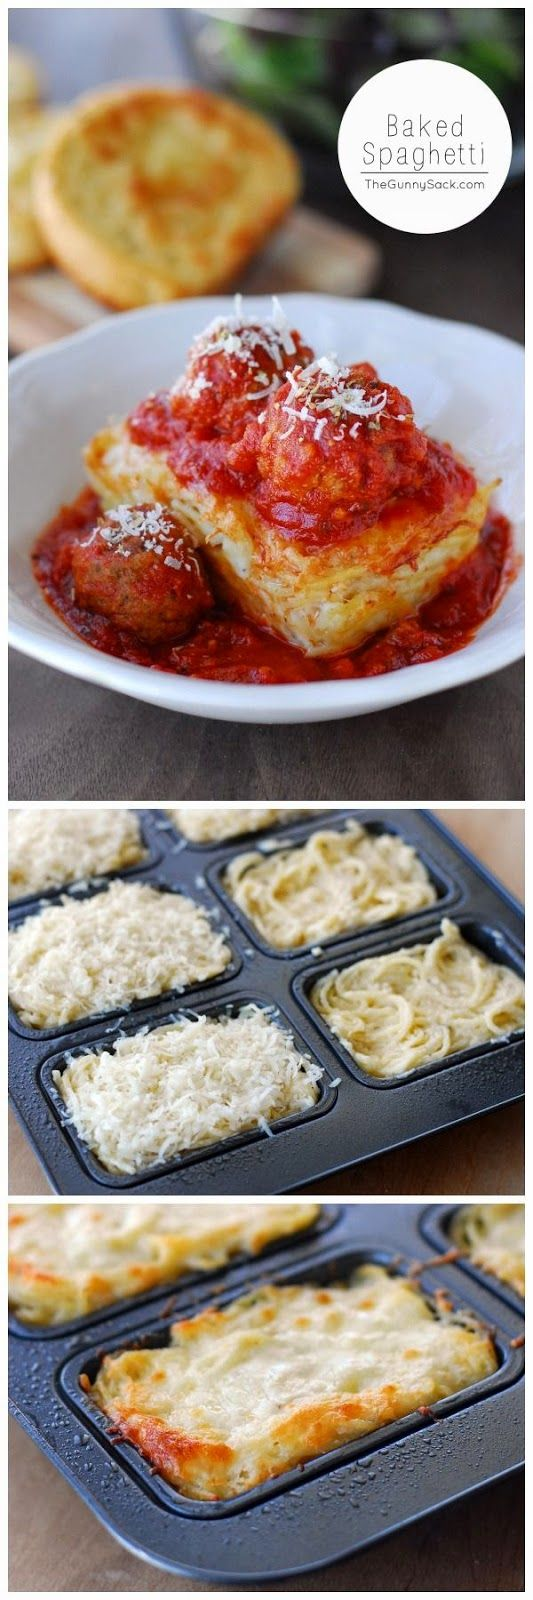 Baked Spaghetti but with squash or zucchini noodles